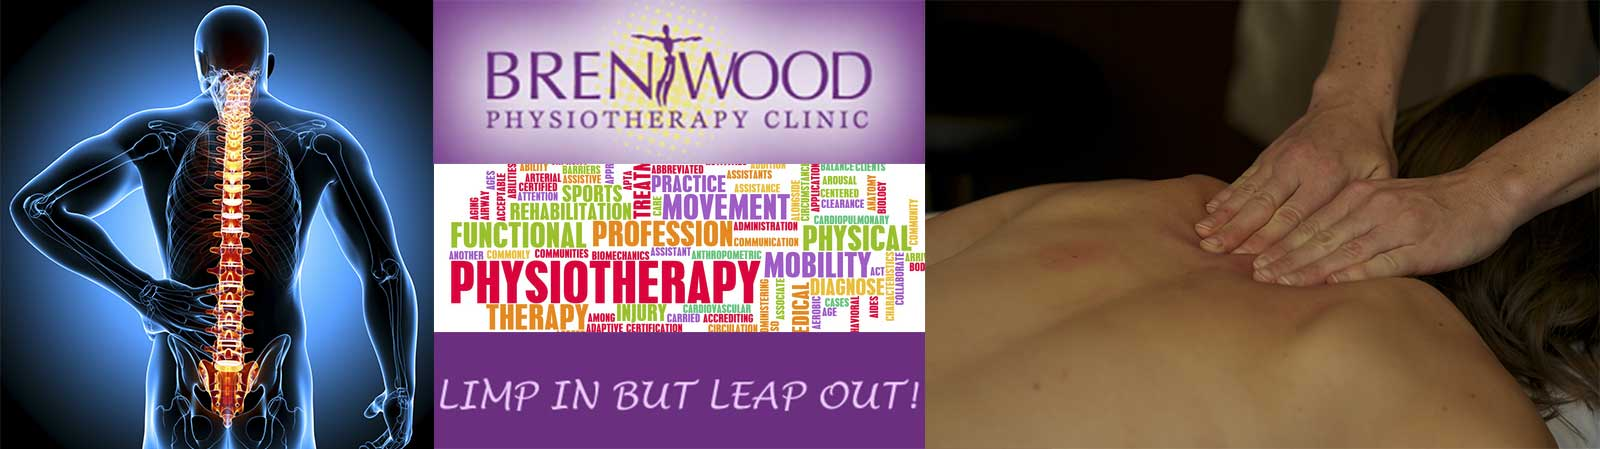 brentwood physio physiotherapy blog back pain limp in and leap out treatment active massage